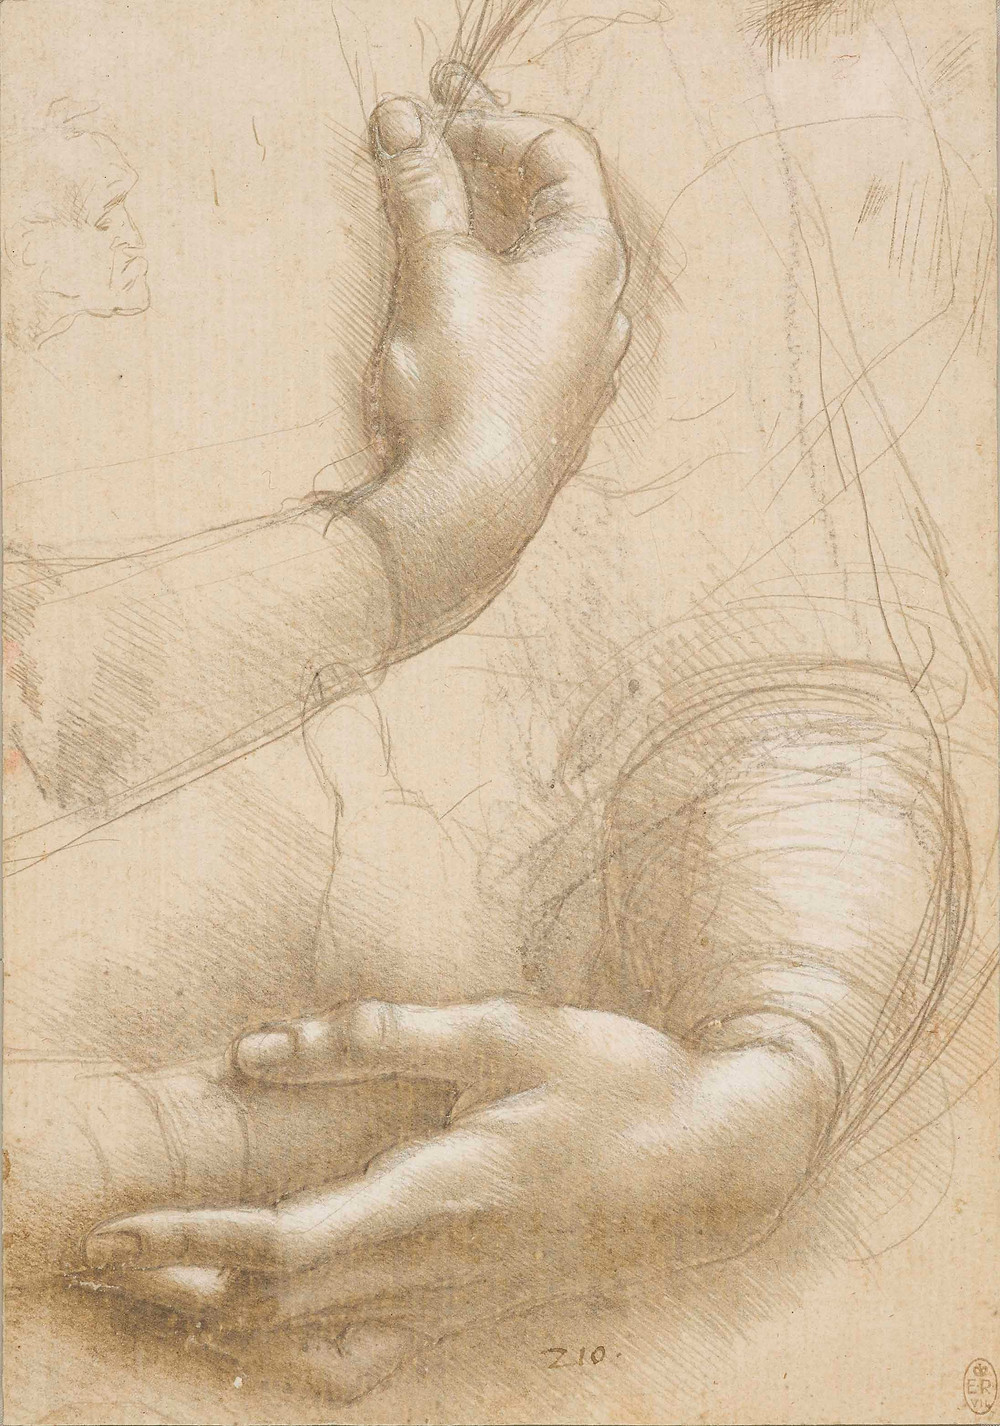 Leonardo da Vinci, A study of a woman's hands, c.1490. Royal Collection Trust/(c) Her Majesty Queen Elizabeth II 2019